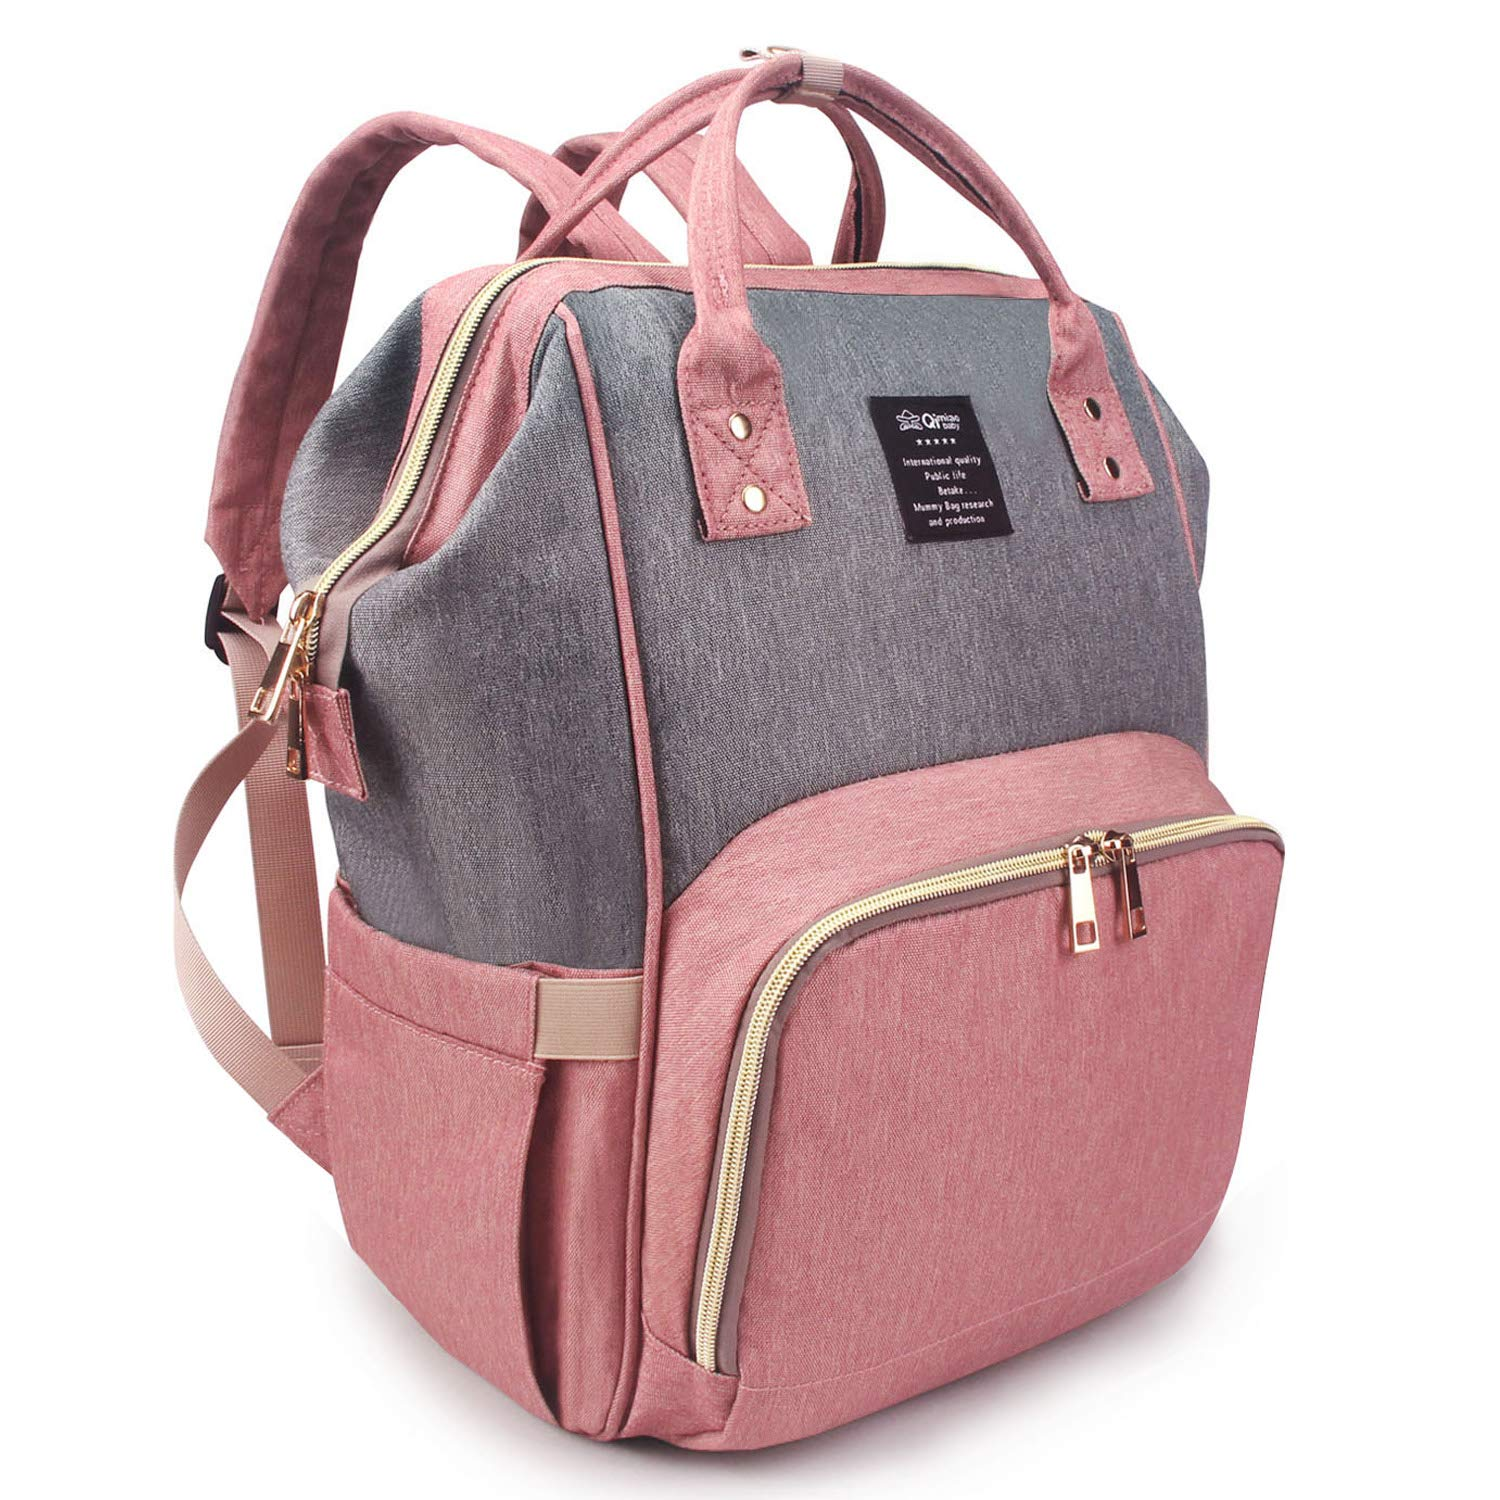 Qimiaobaby Diaper Bag Backpack, baby Nappy storage travel bag (Pink Gray)